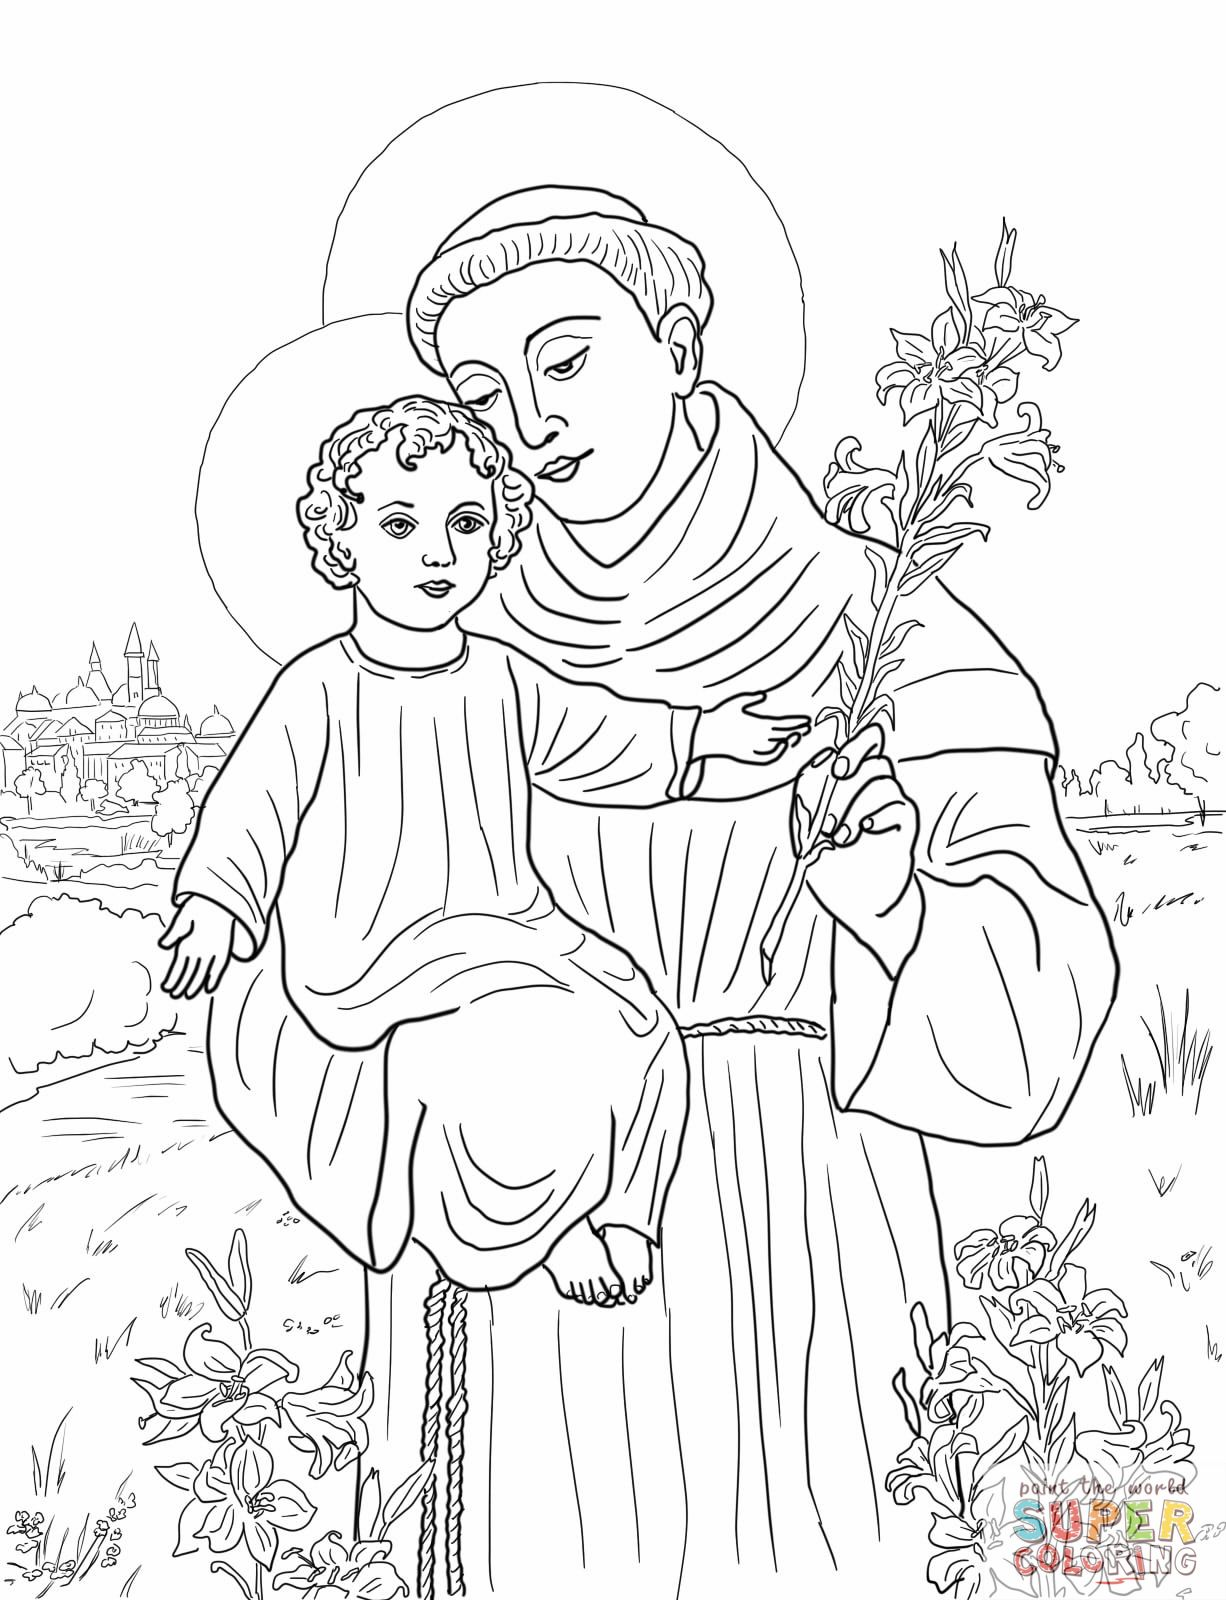 St anthony of padua coloring pageg 12261600 pixels st anthony of padua coloring pageg 1226 biocorpaavc